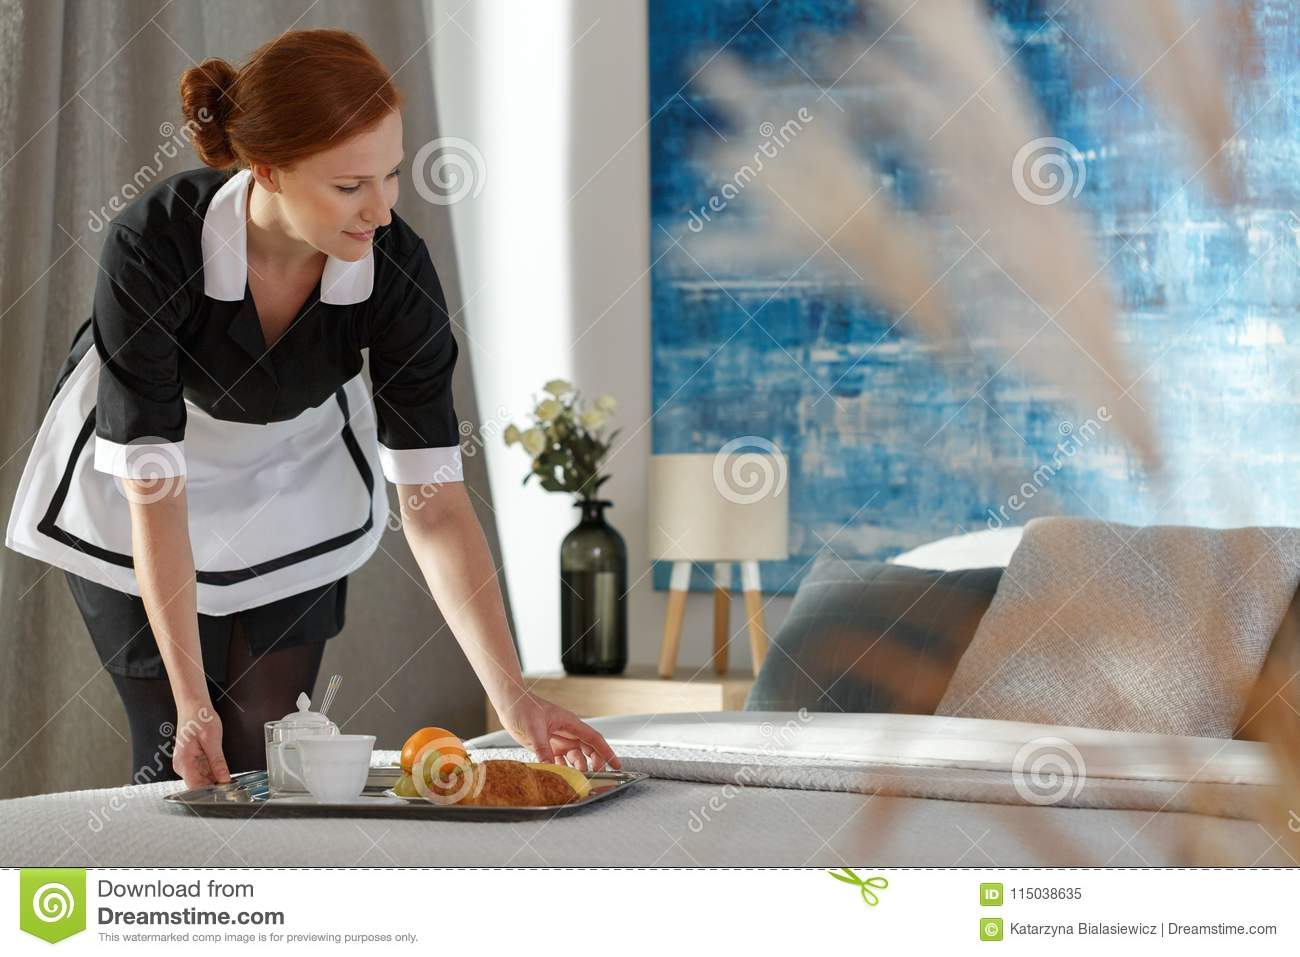 Housemaid putting tray with food